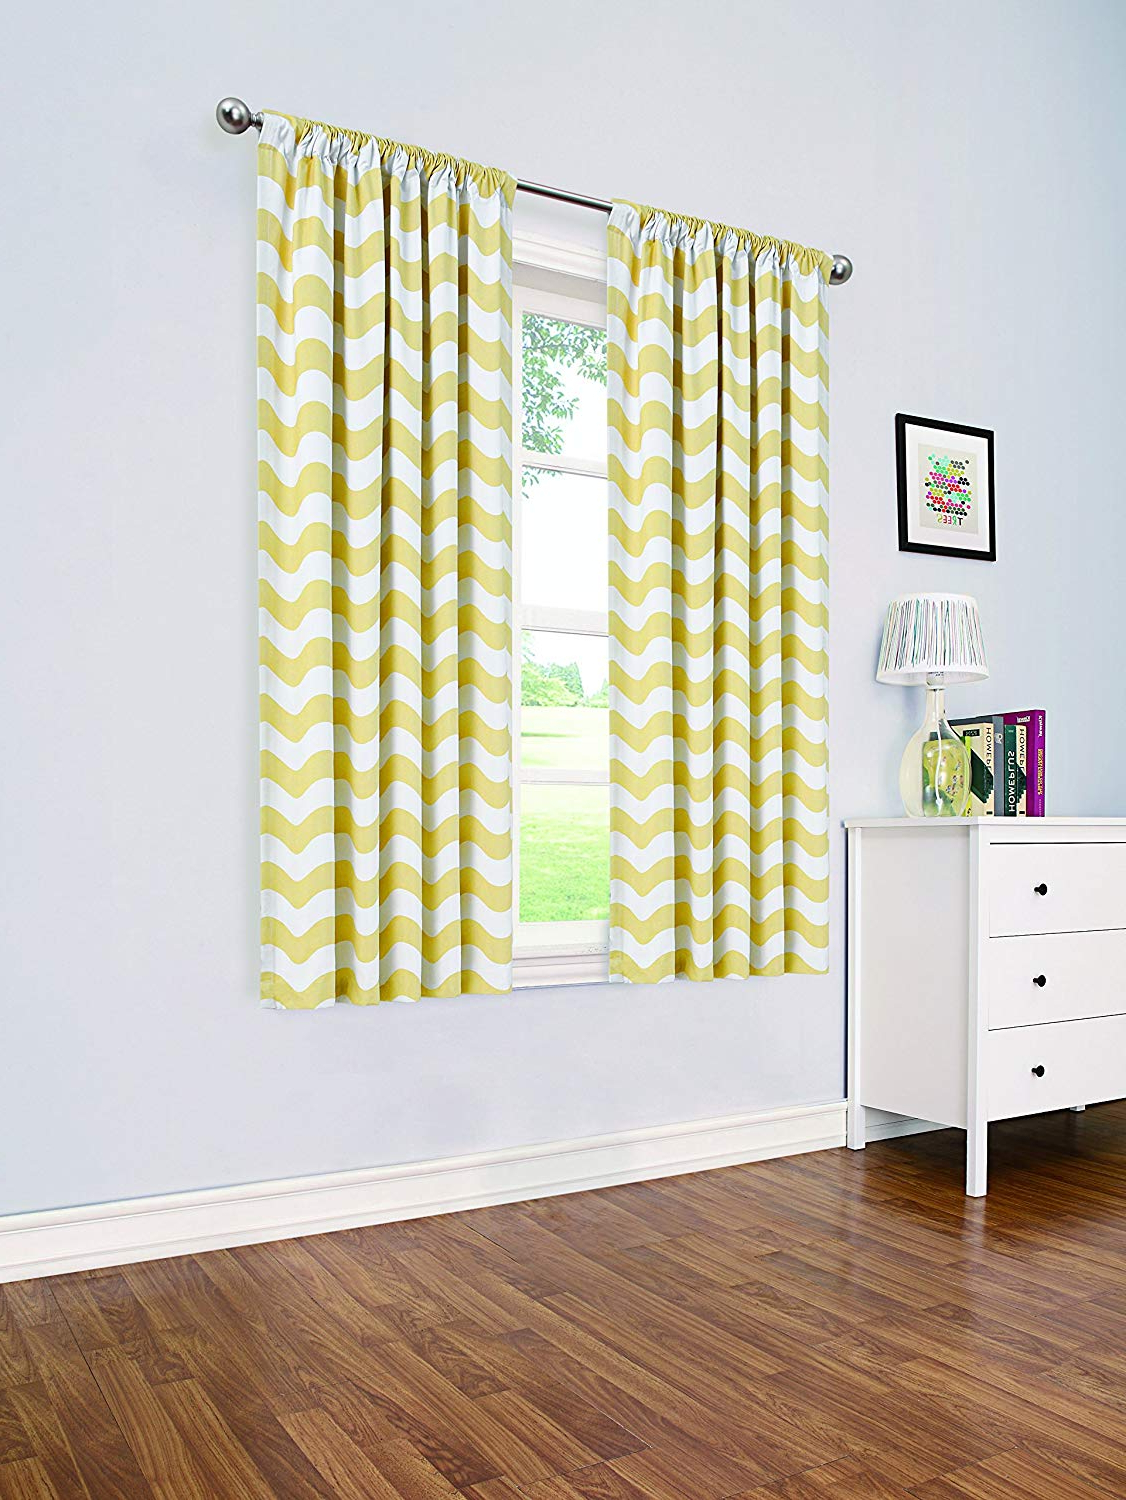 "Thermaback Blackout Window Curtains Within Best And Newest Eclipse My Scene Thermaback Blackout Wavy Chevron Window Curtain Panel, 42"" X 63"", Yellow (View 18 of 20)"